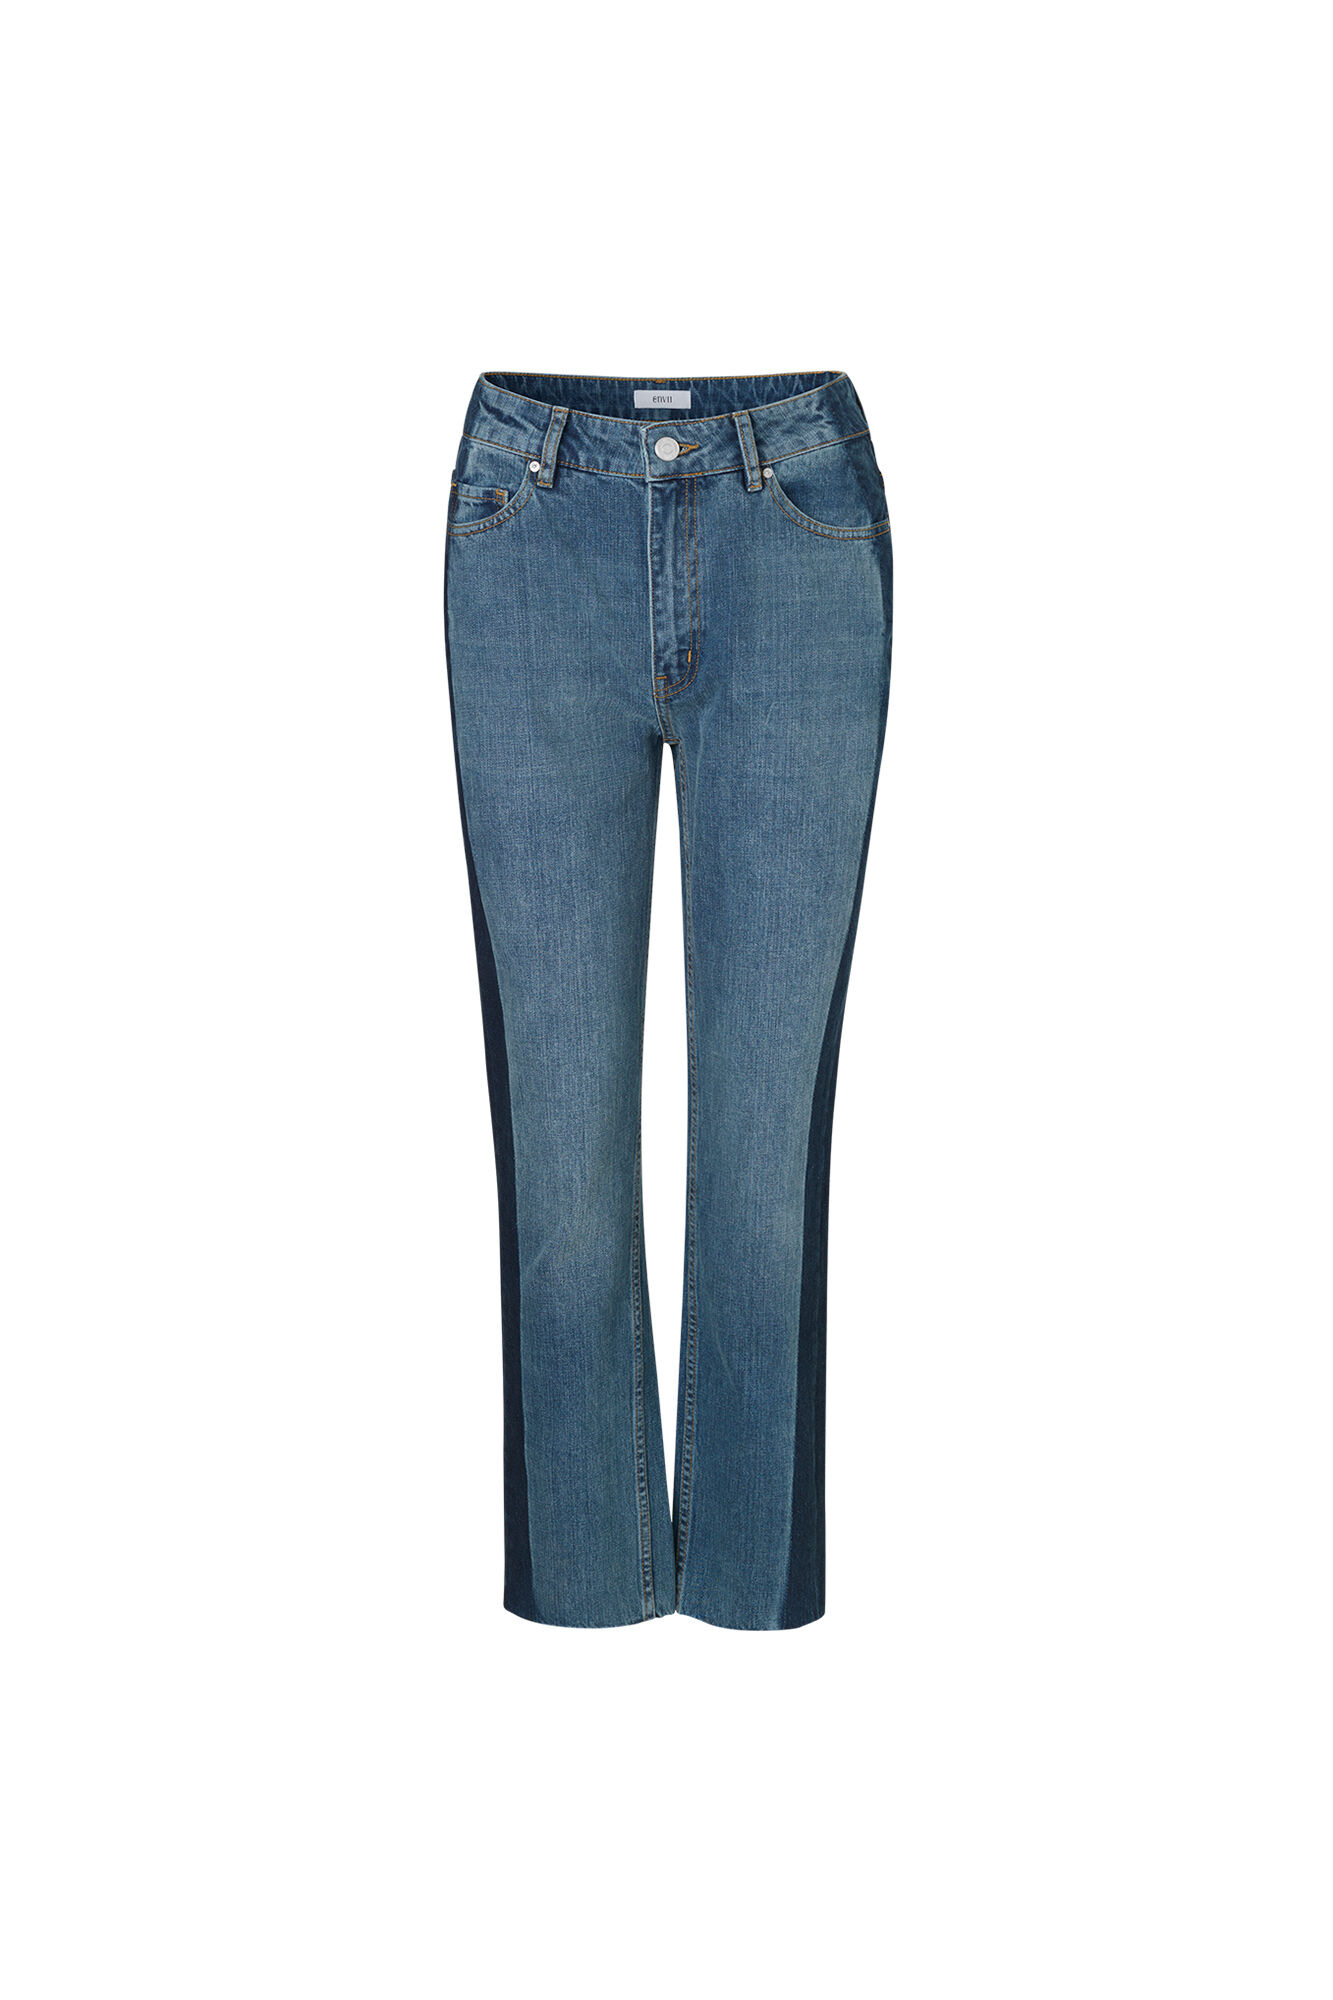 ENBRENDA JEANS BLOCK 6355, WORN BLUE